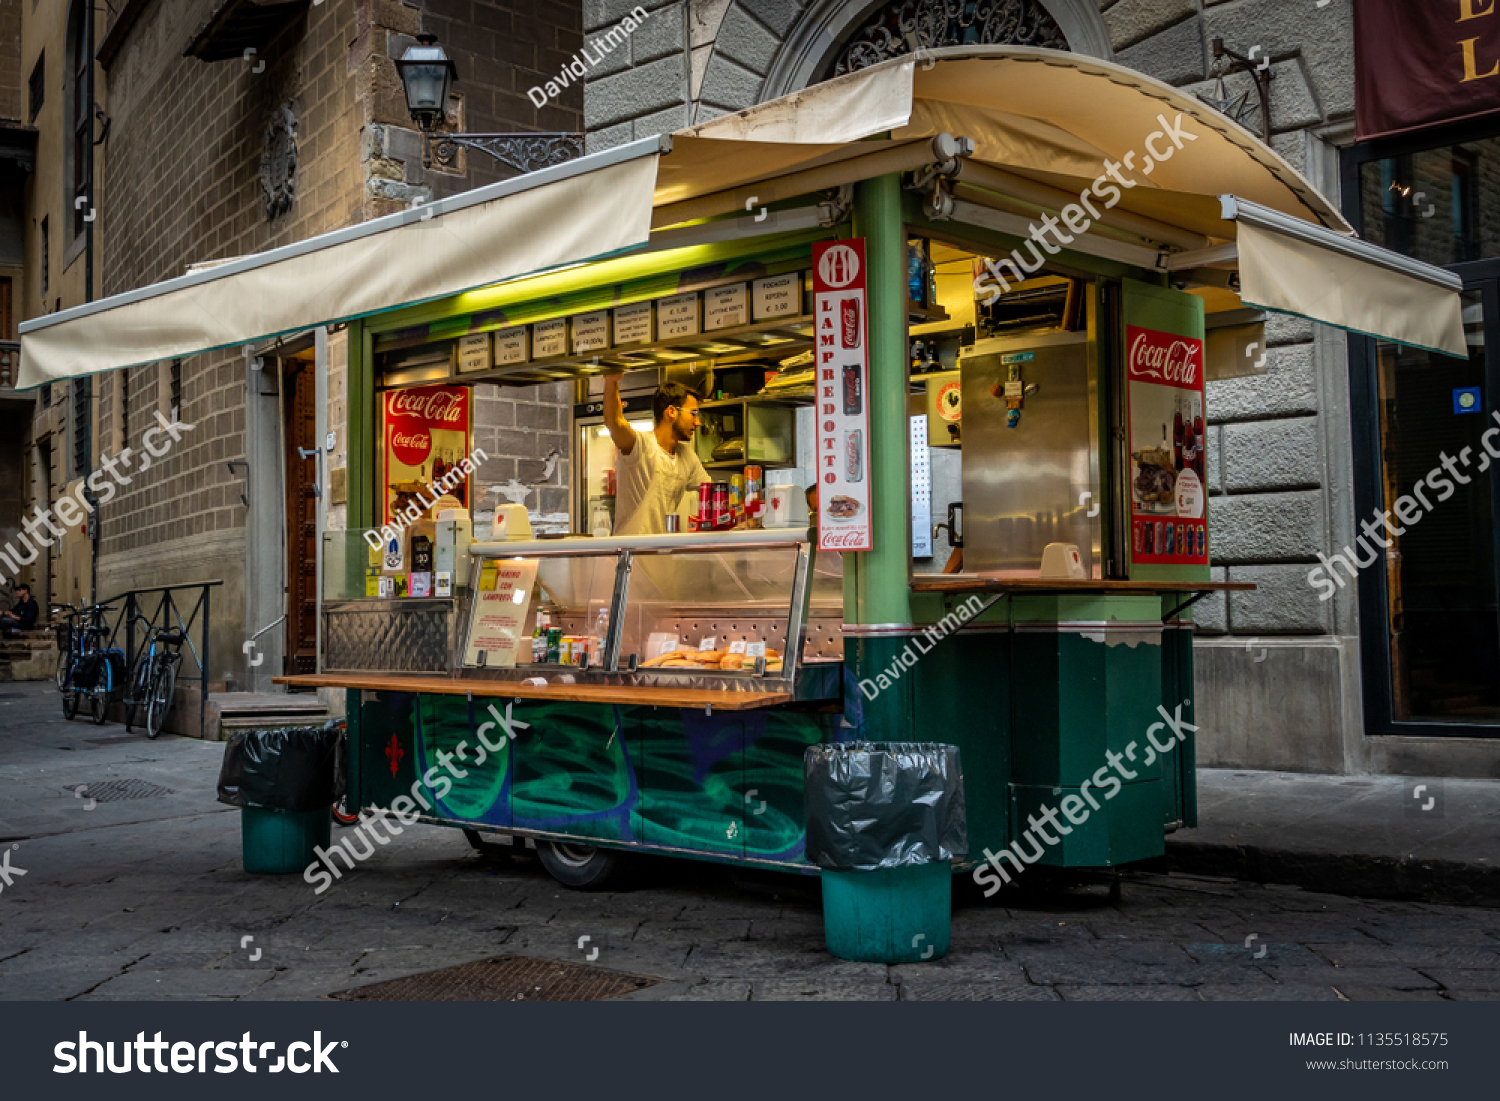 Florence, Italy - June 8, 2018: A street food vendor cart truck that specializes in panino lampredotto, a sandwich with a type of  tripe made from the cows fourth stomach, a local favorite.